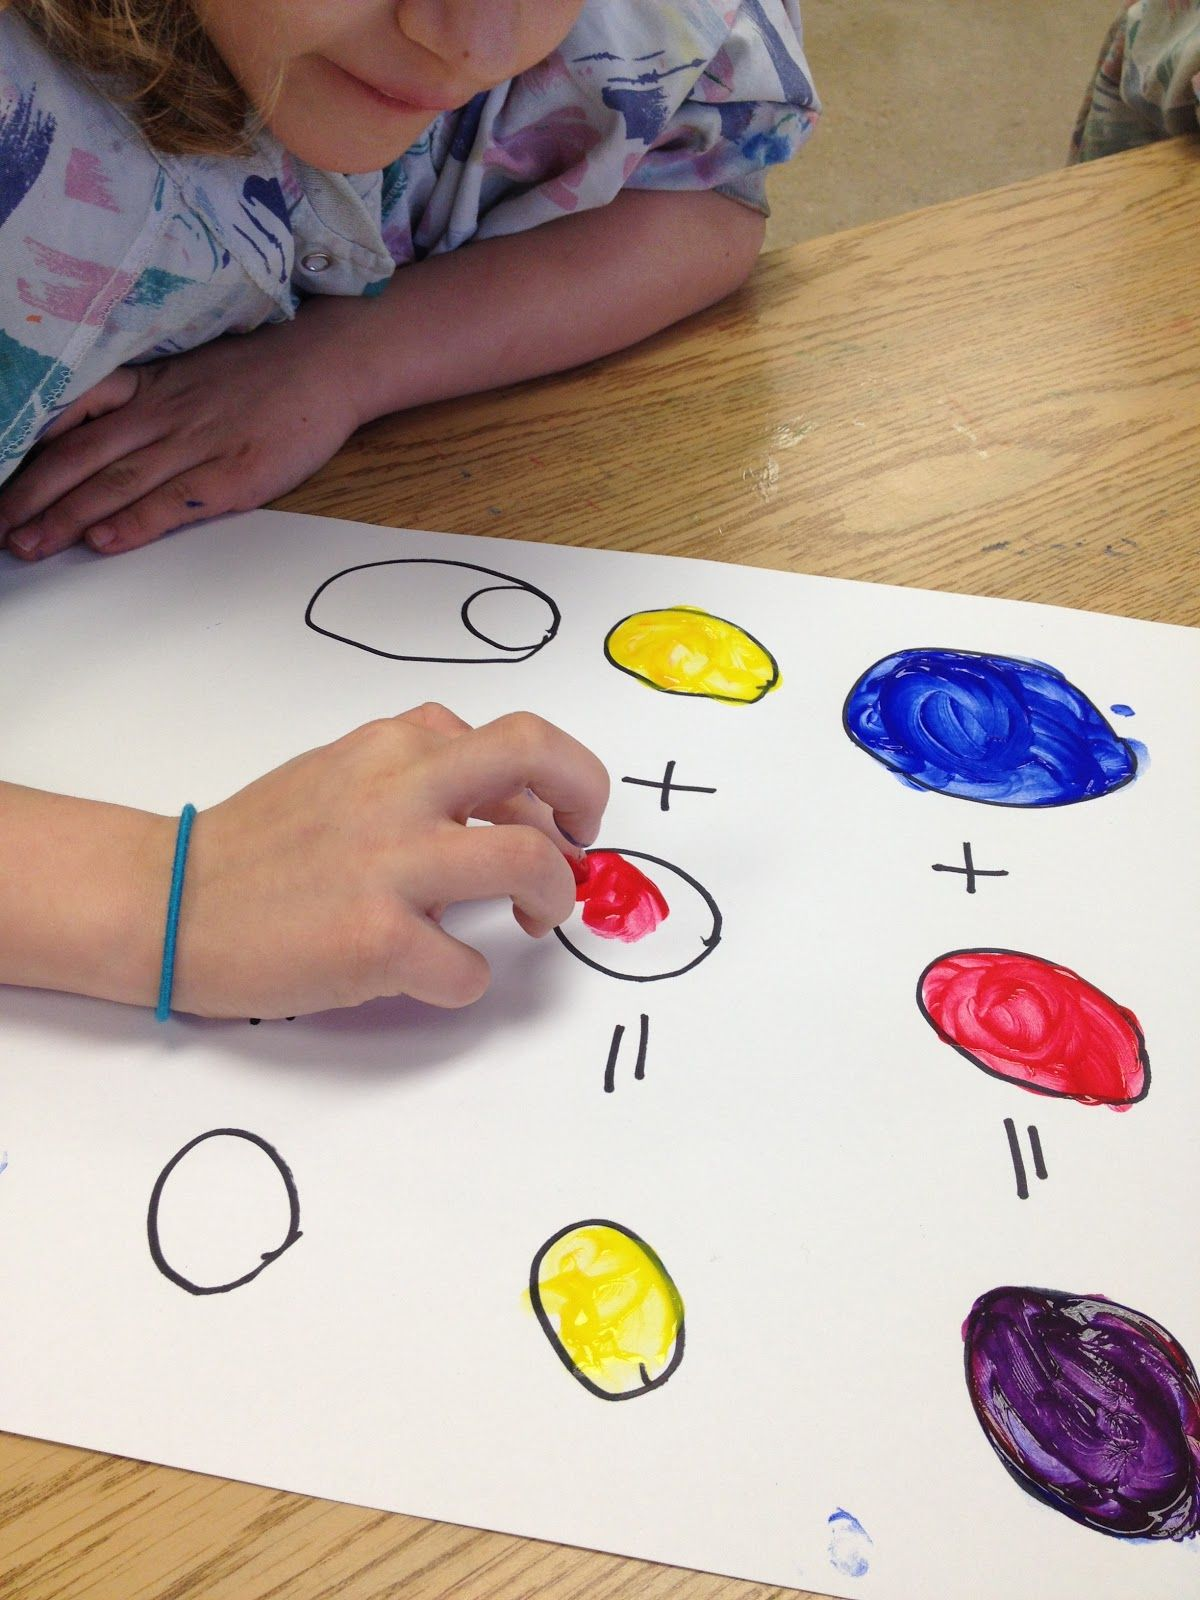 Color wheel art lesson for second grade - Find This Pin And More On 2nd 3rd Grade By Reasonkw09